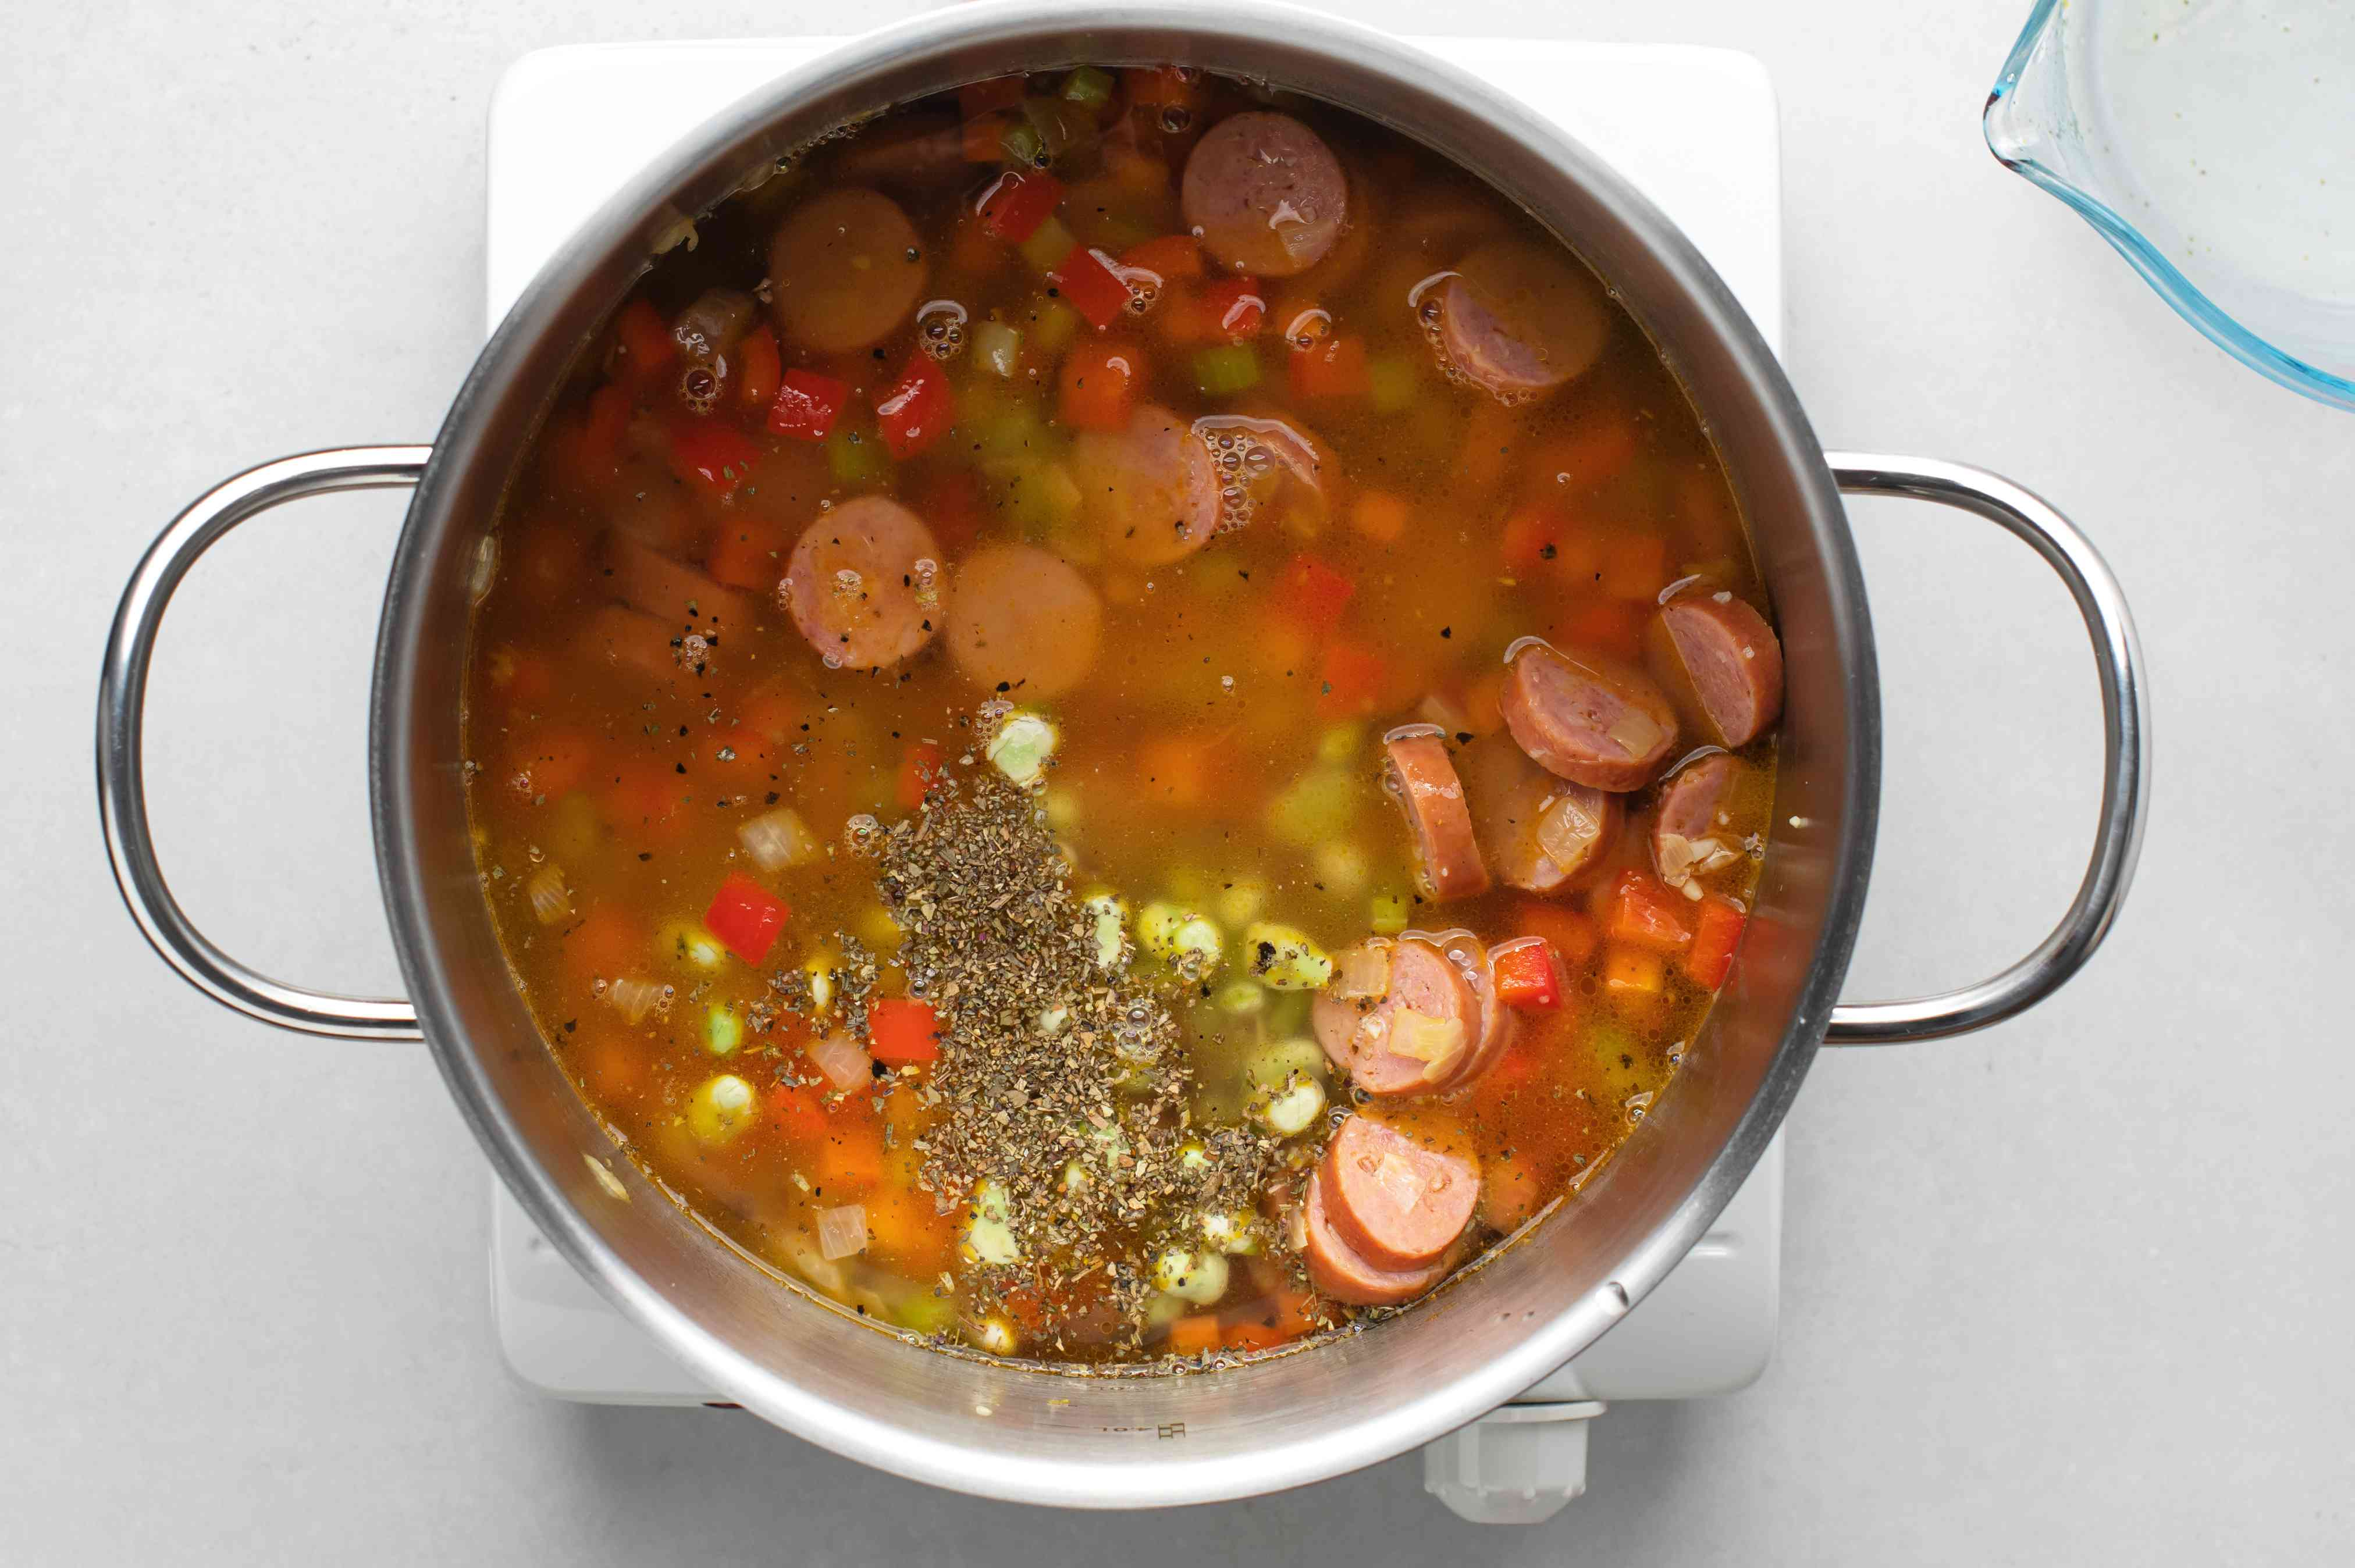 Add the lima beans, salt, pepper, basil, and chicken stock to the sausage and vegetables in the pot